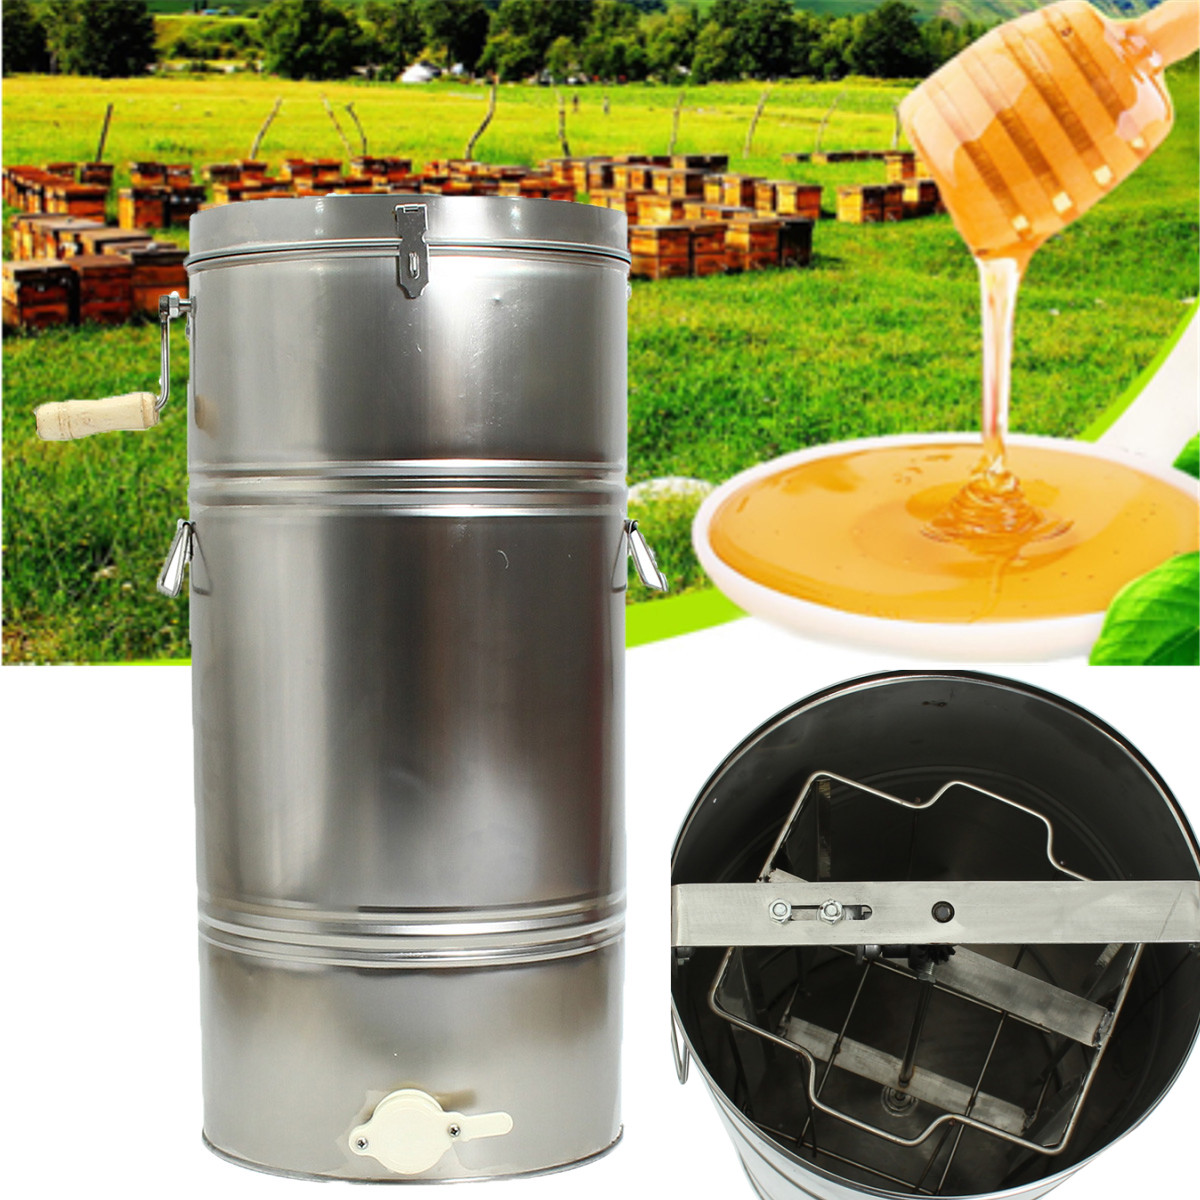 2 Frame Stainless Steel Bee Honey Extractor SS Honeycomb Drum Beekeeping 0.9mm